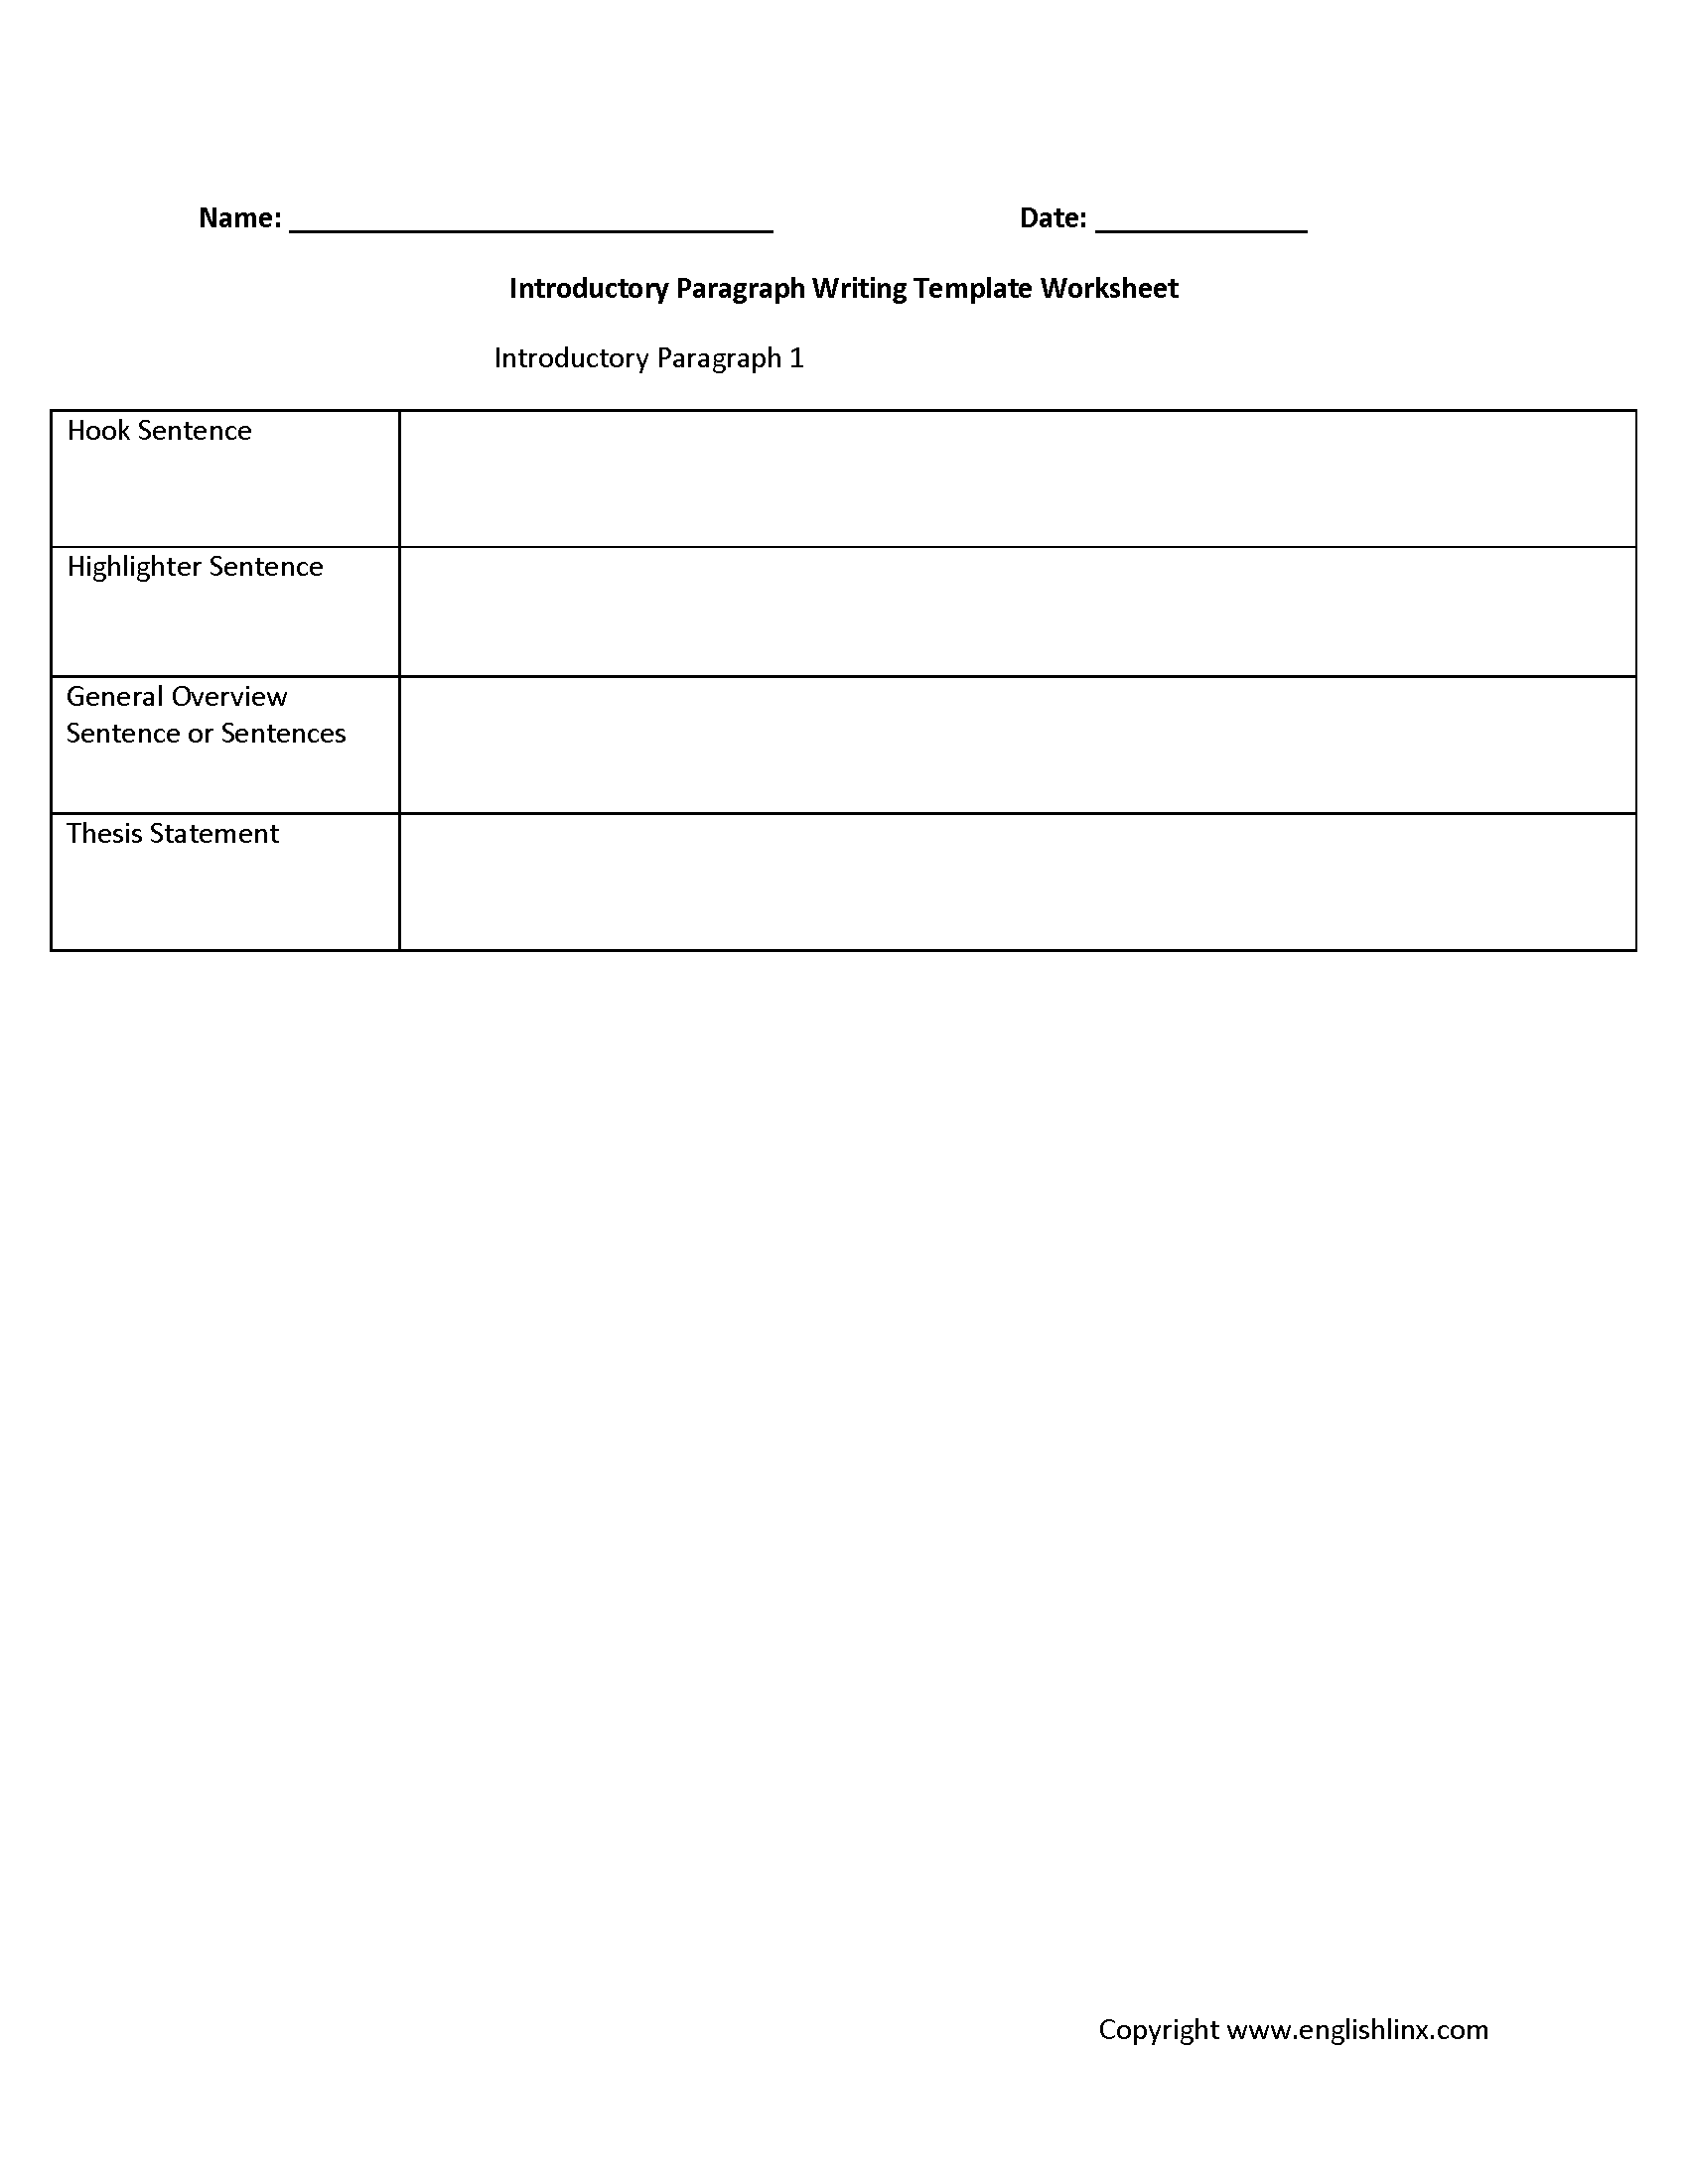 Introductory Paragraph Writing Template Worksheet